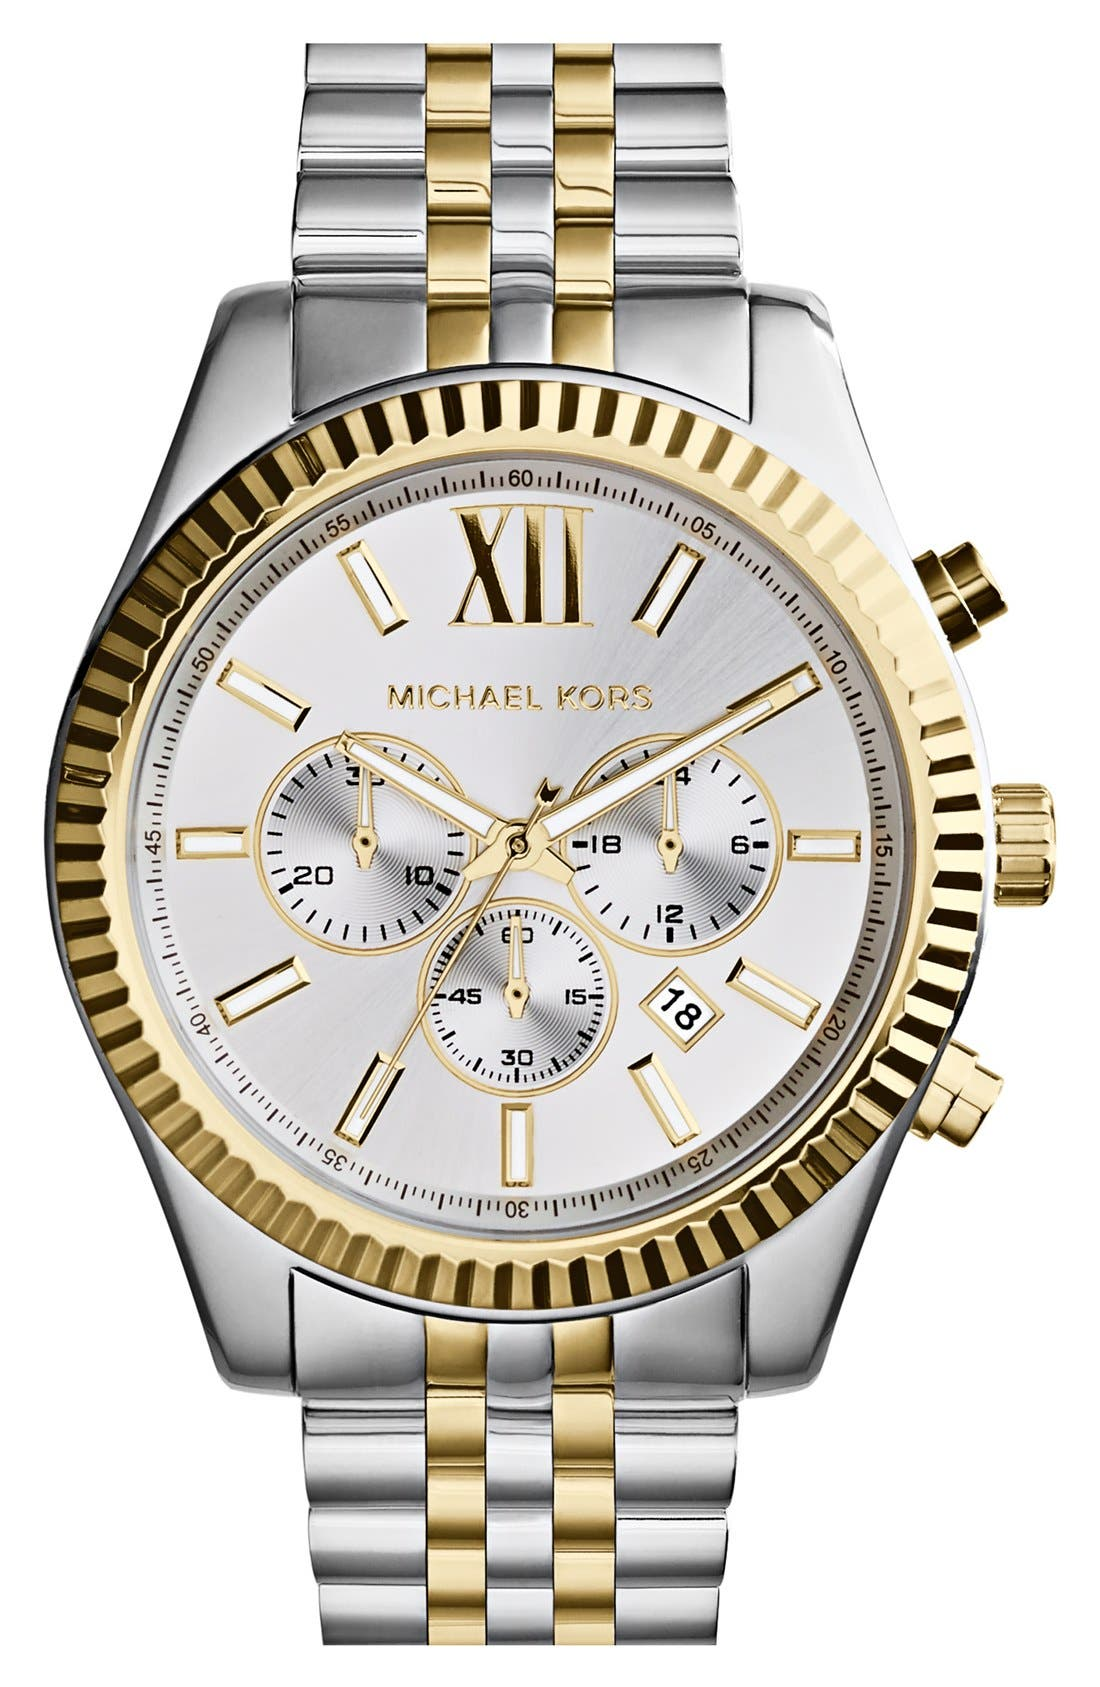 Main Image - Michael Kors Large Lexington Chronograph Bracelet Watch, 45mm